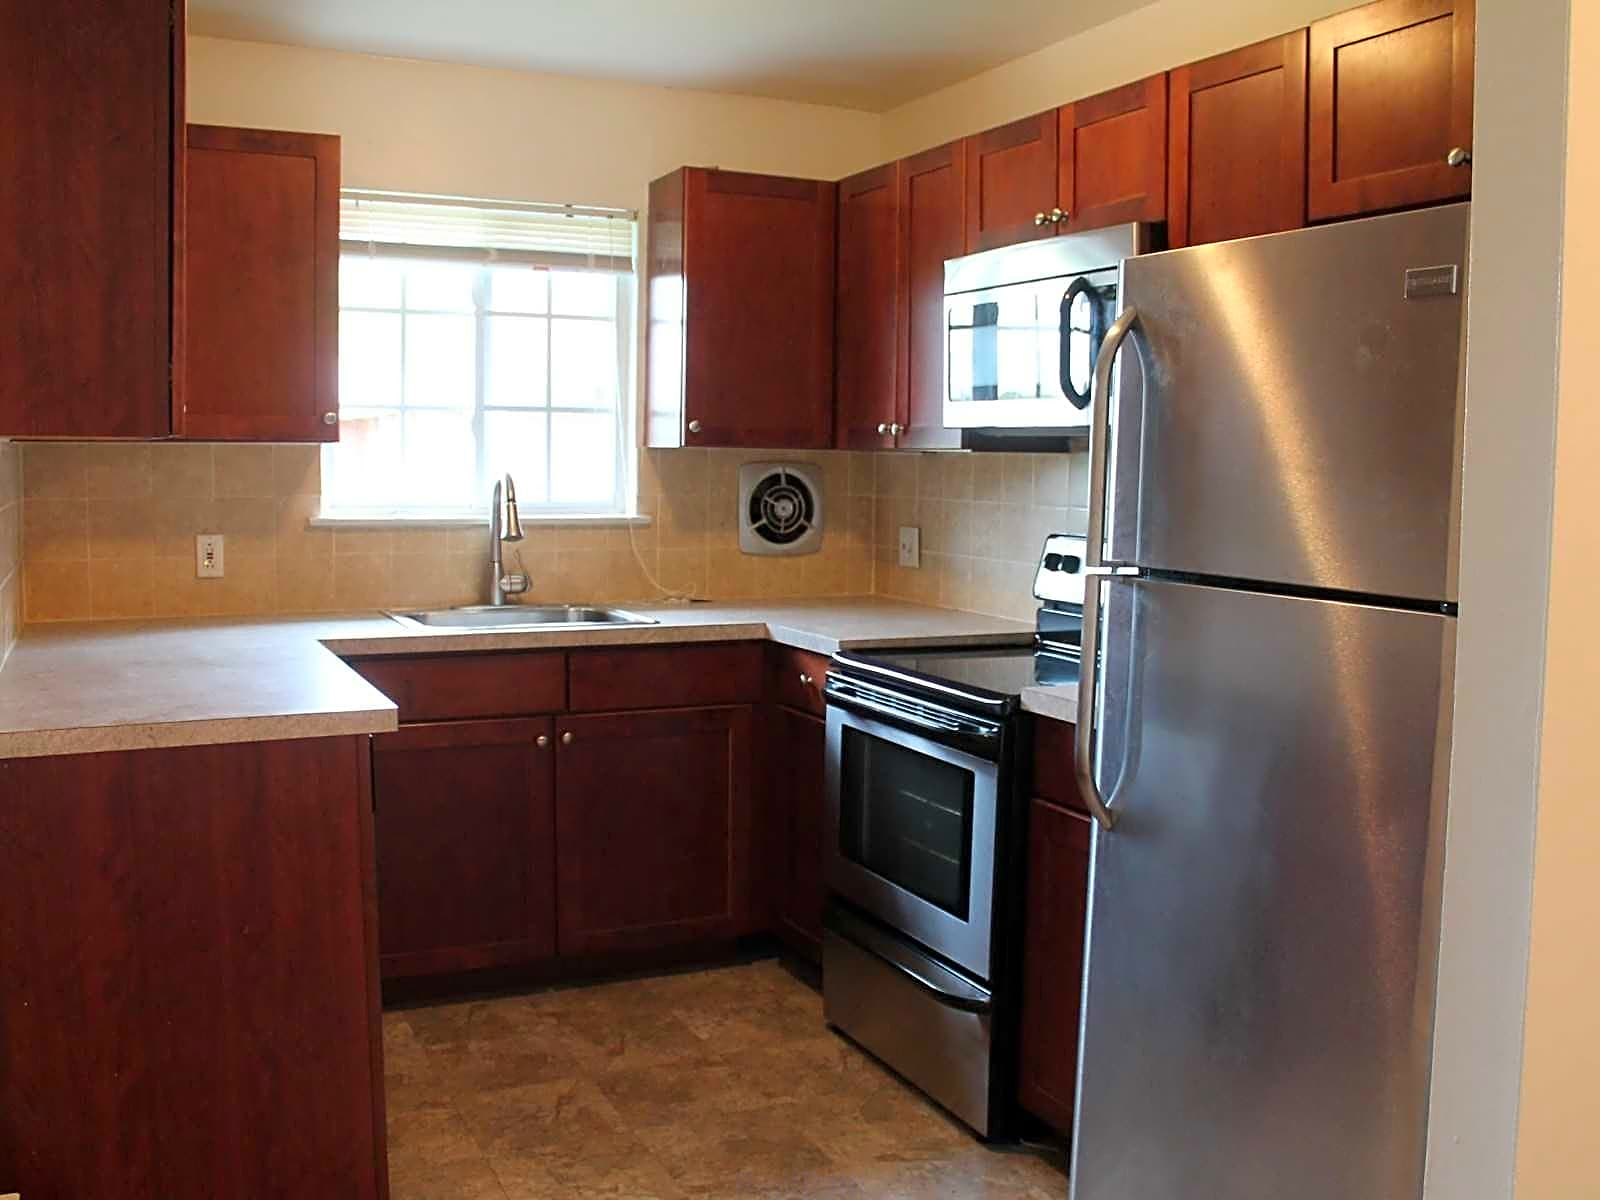 Apartments Near Centenary Swartswood Gardens for Centenary College Students in Hackettstown, NJ